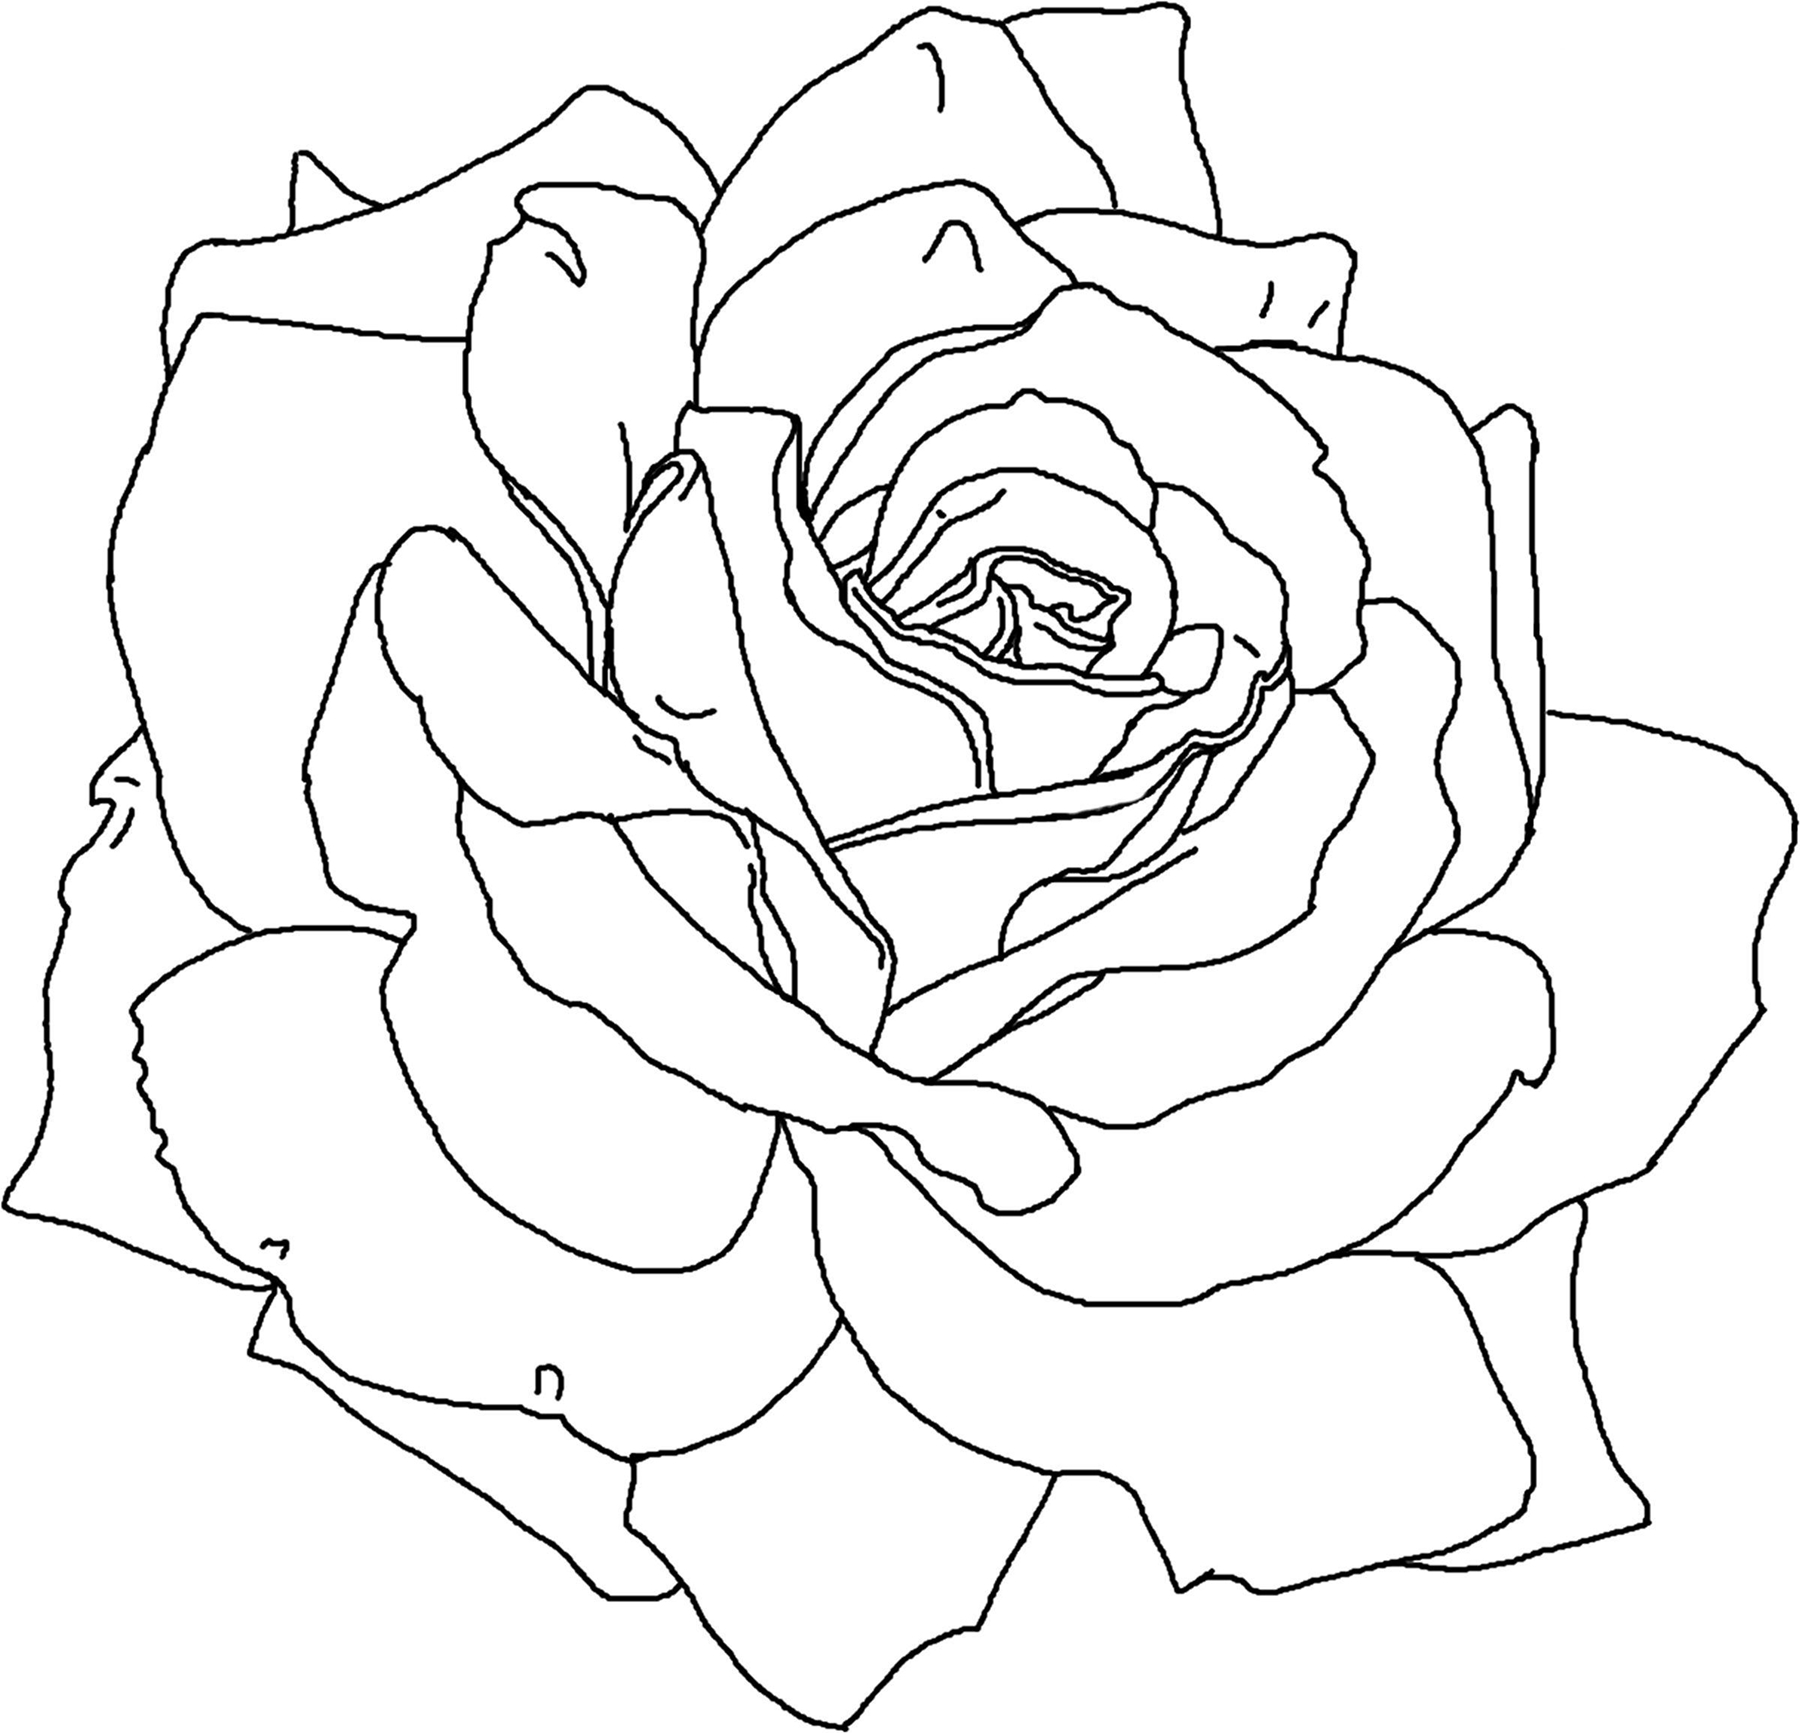 Line Art Flowers : Free printable flower coloring pages for kids best